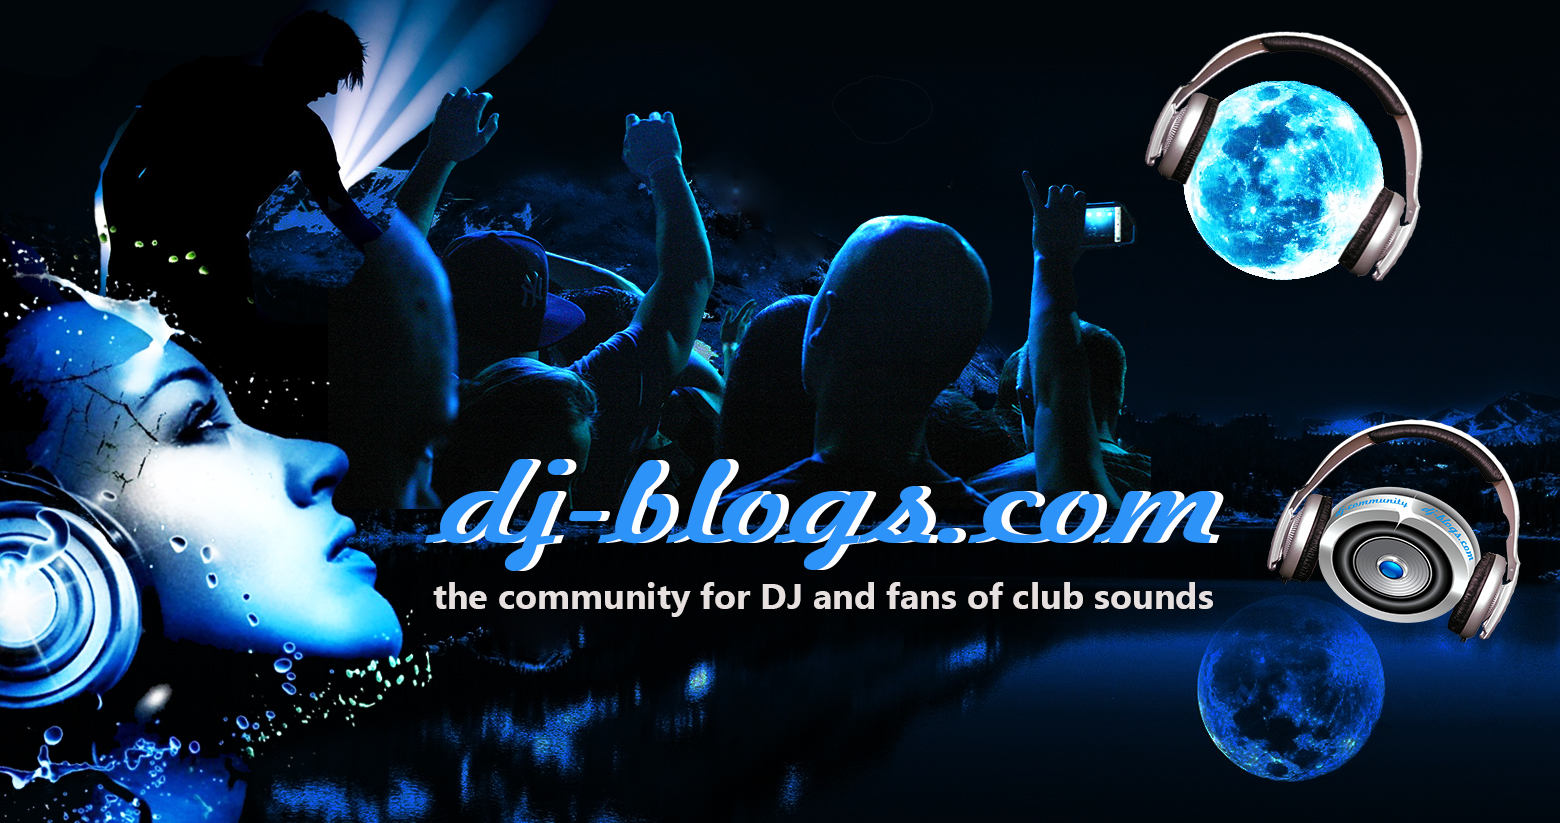 dj-blogs.com